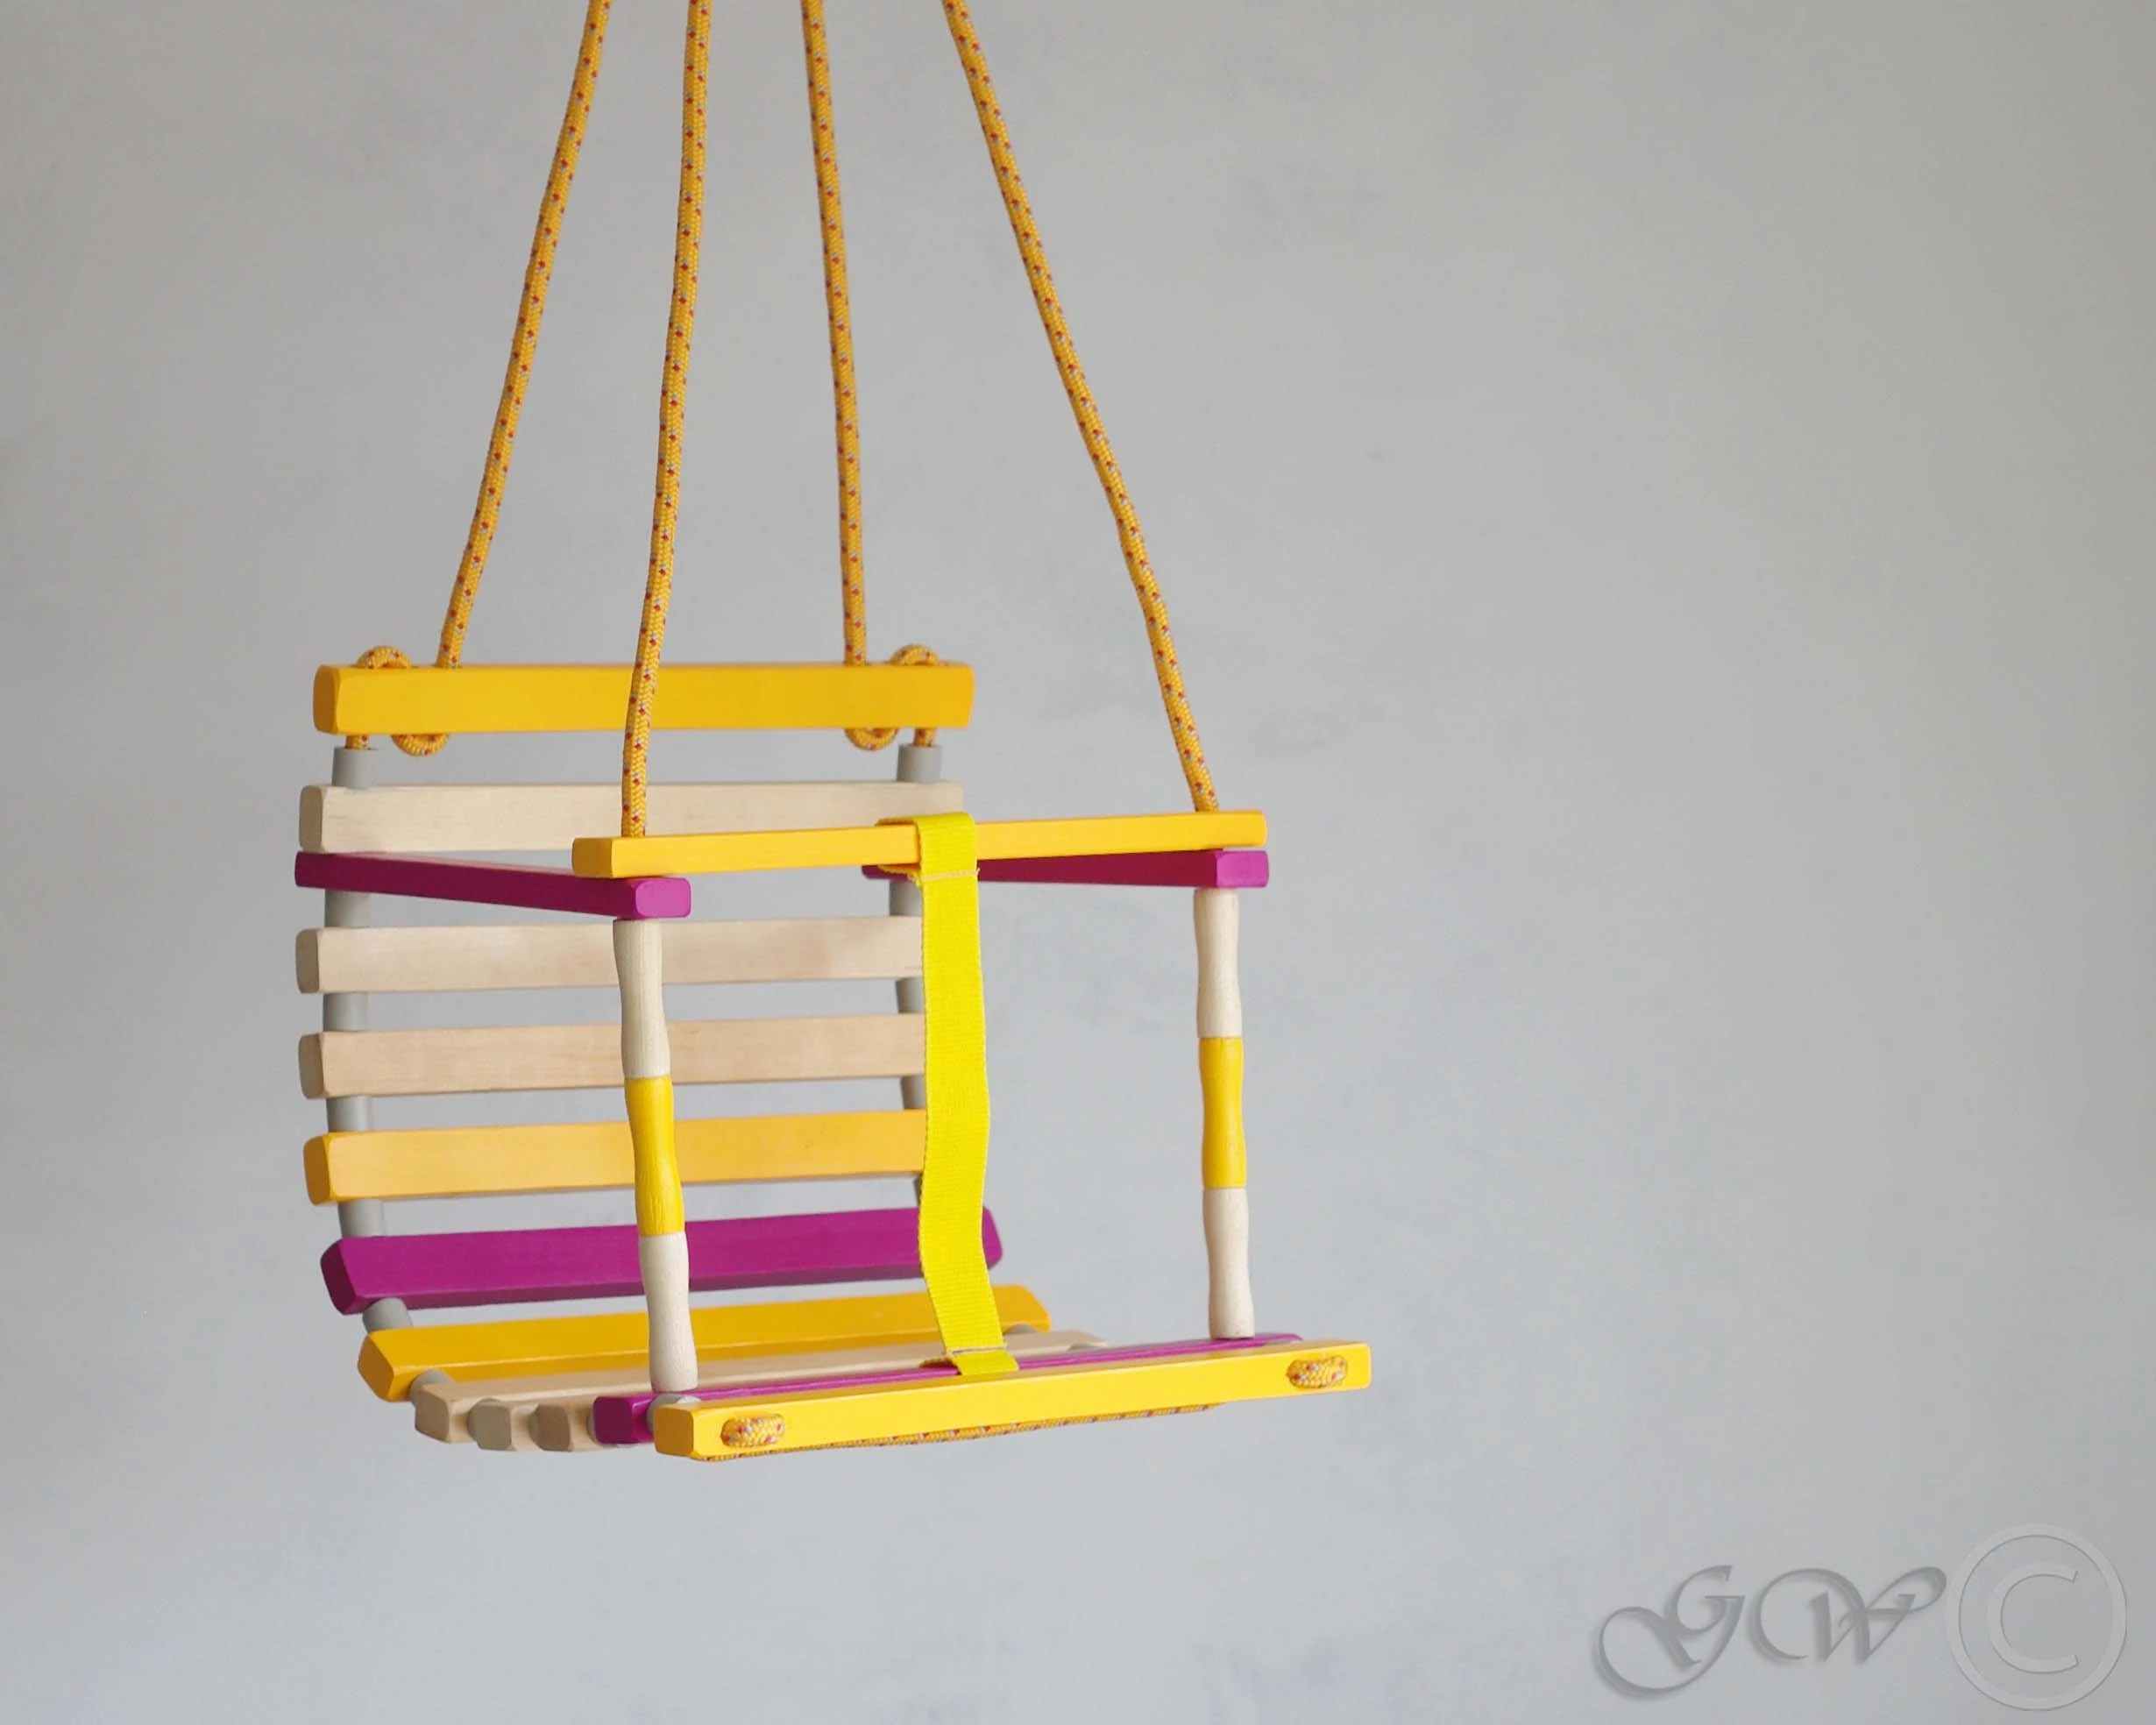 Personalized Wooden Handmade Swing Baby Swing Toddler swing Bright yellow-purple